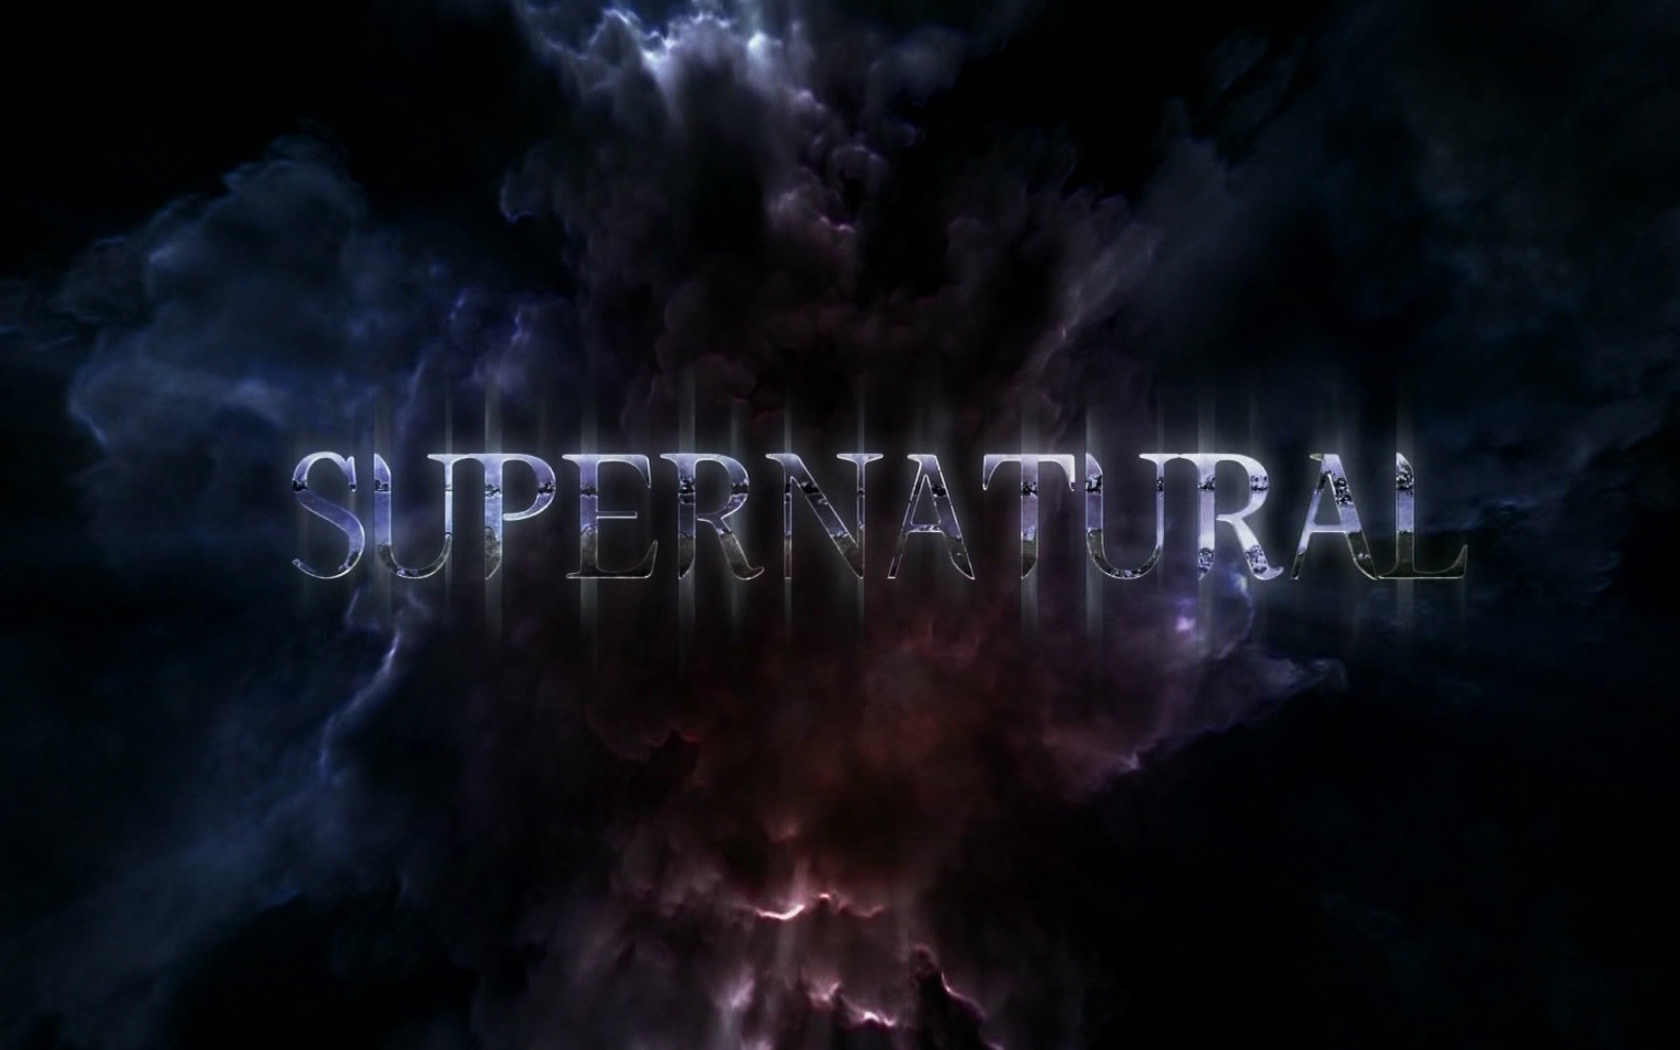 Supernatural Wallpaper   HD Wallpapers and Pictures 1680x1050